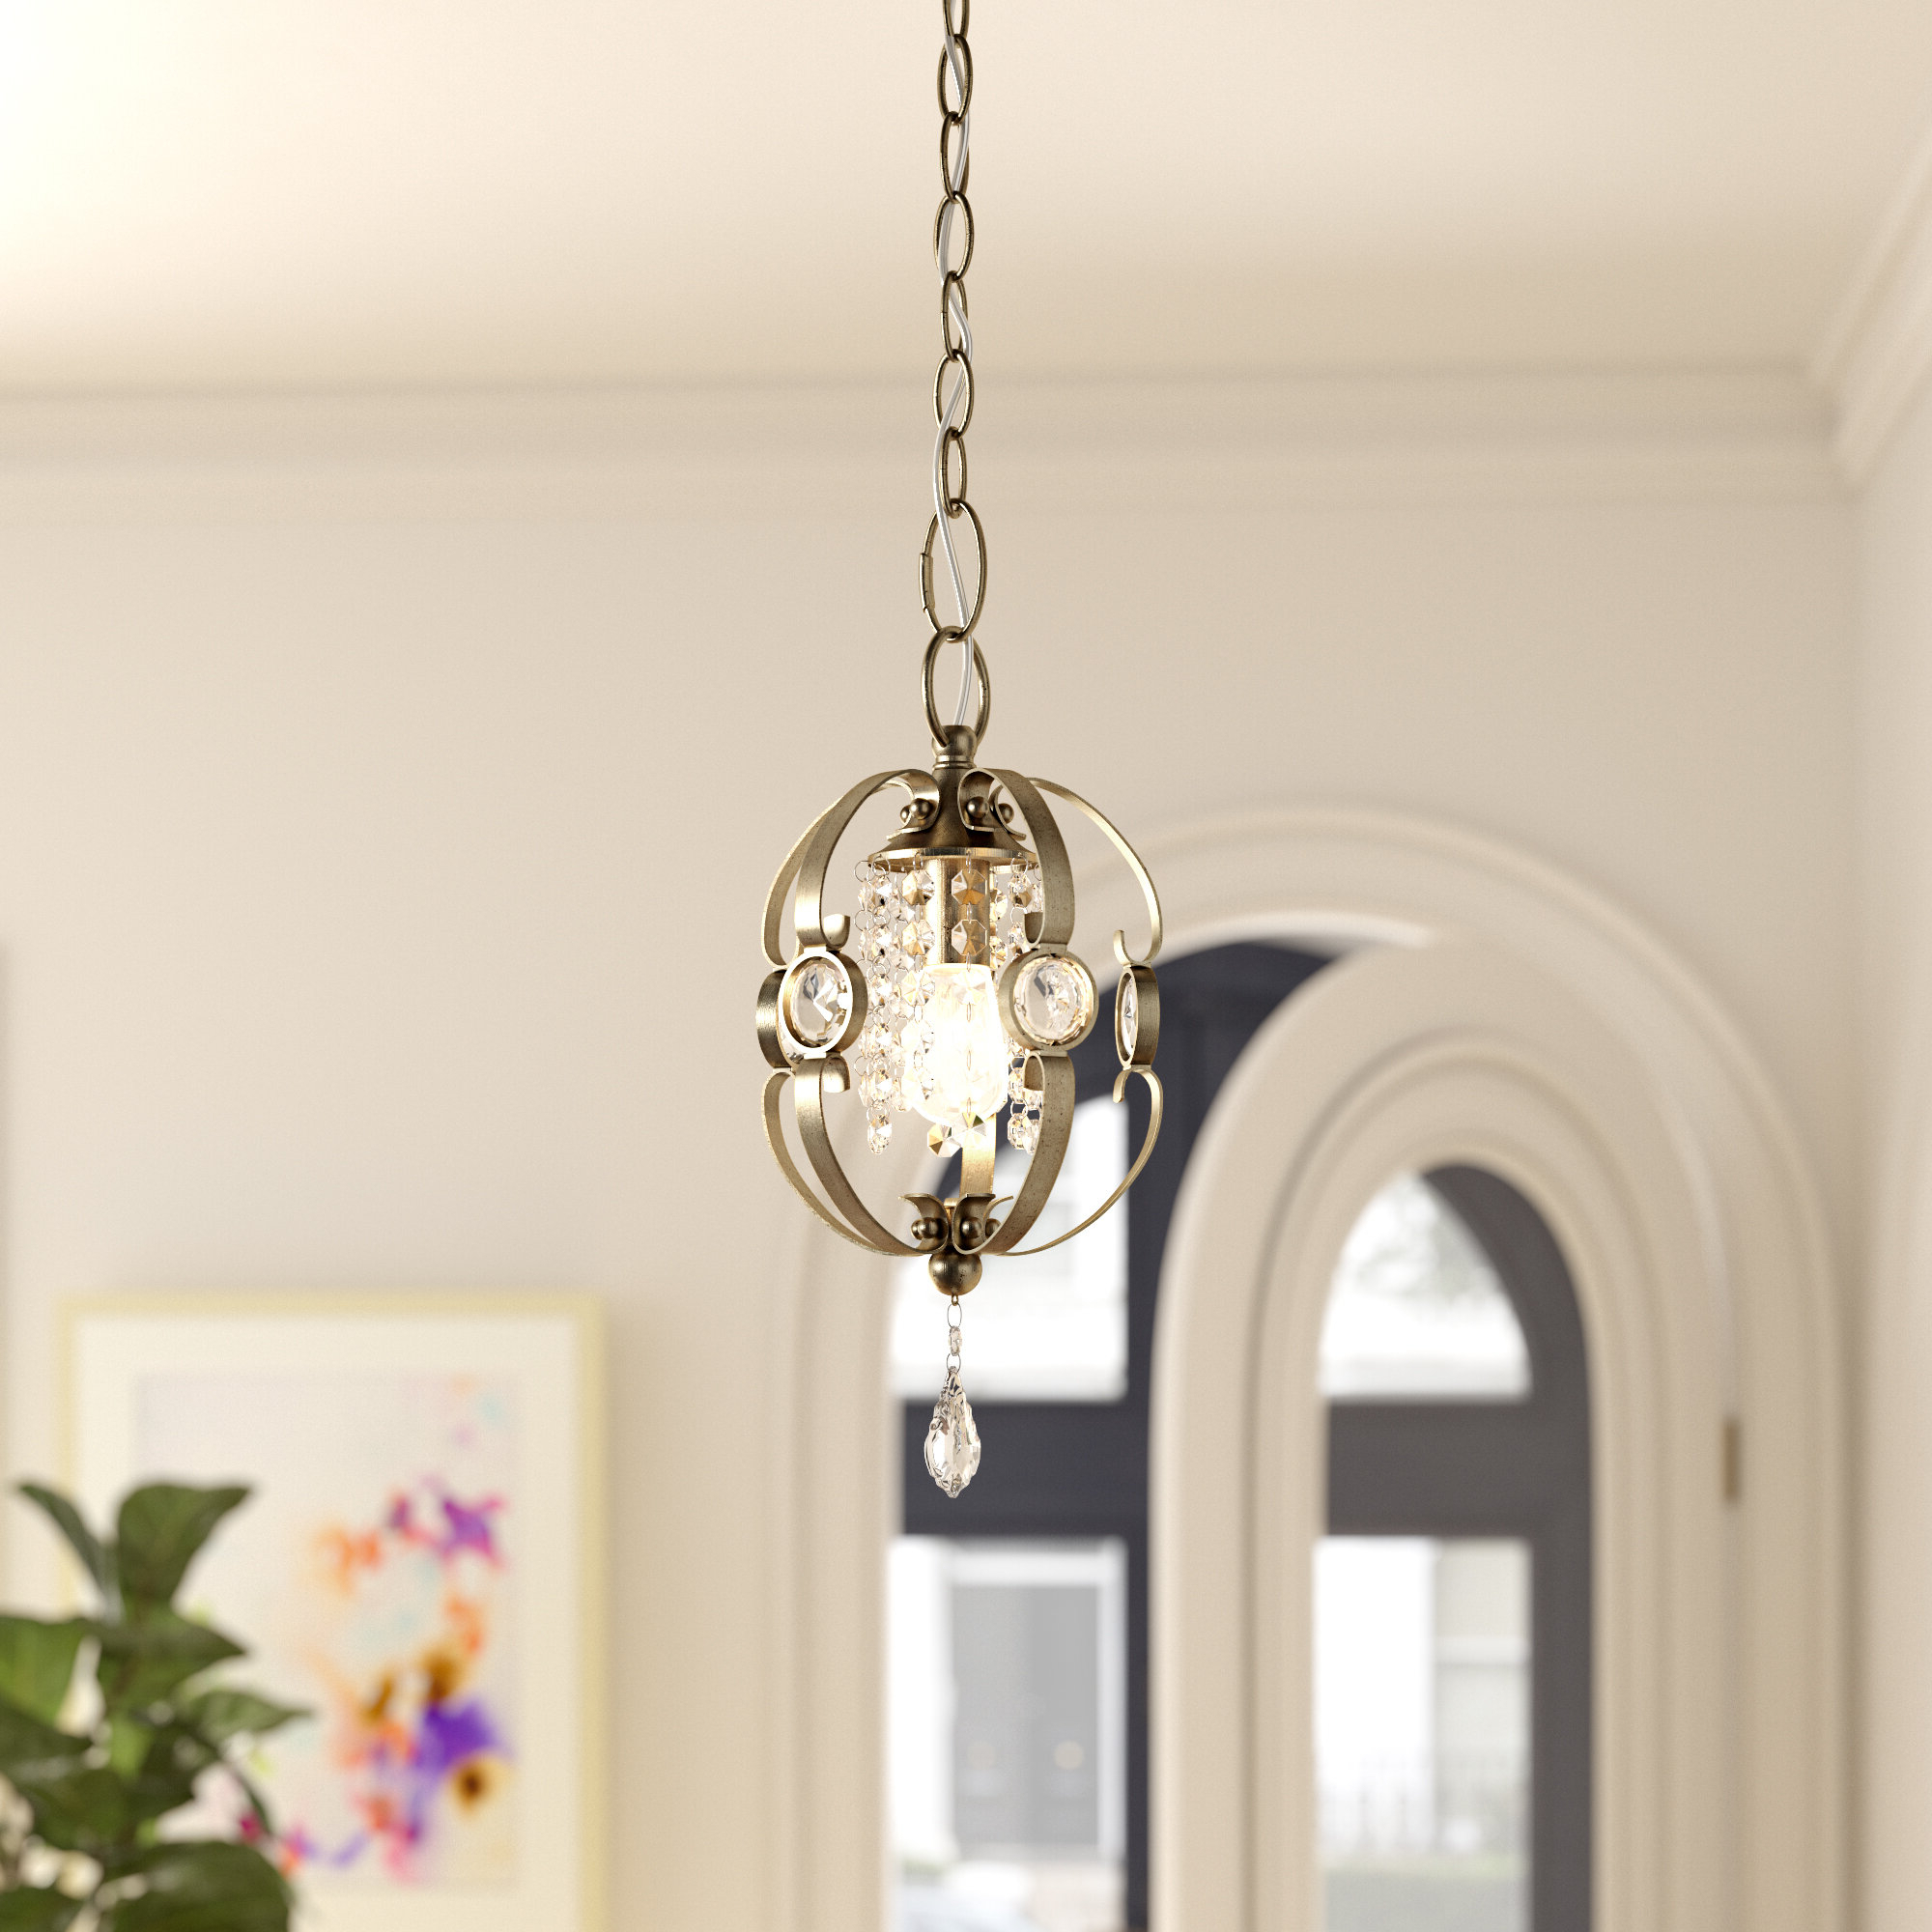 Oriana 4 Light Single Geometric Chandeliers Intended For 2020 Hardouin 1 Light Single Geometric Pendant (Gallery 7 of 20)